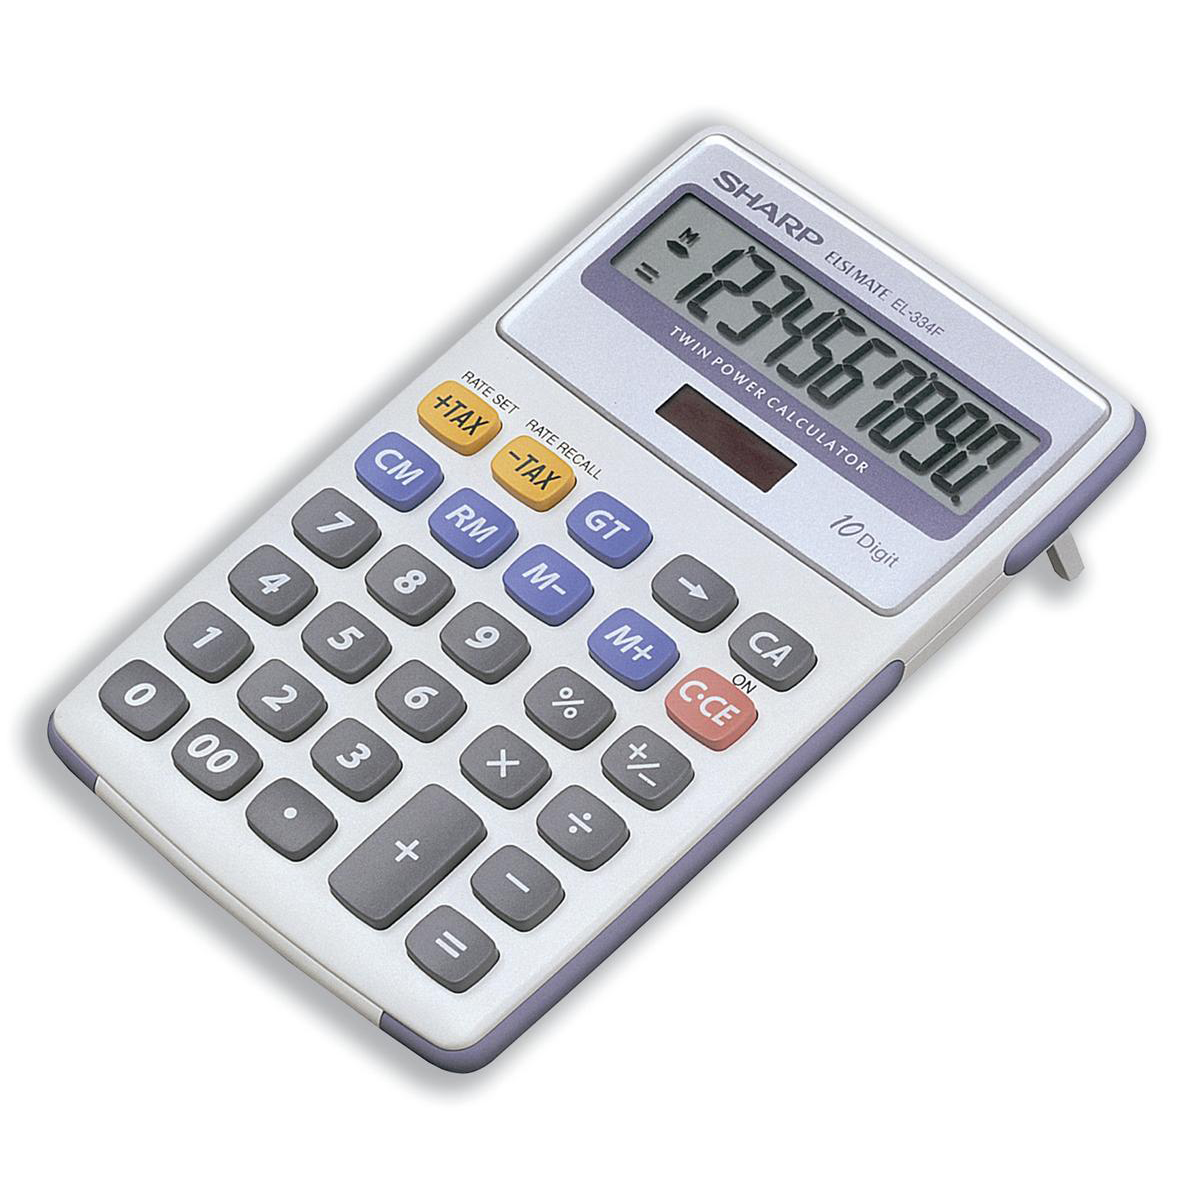 Calculators Sharp Desktop Calculator 10 Digit 4 Key Memory Battery/Solar Power 108x15x170mm White Ref EL334FB